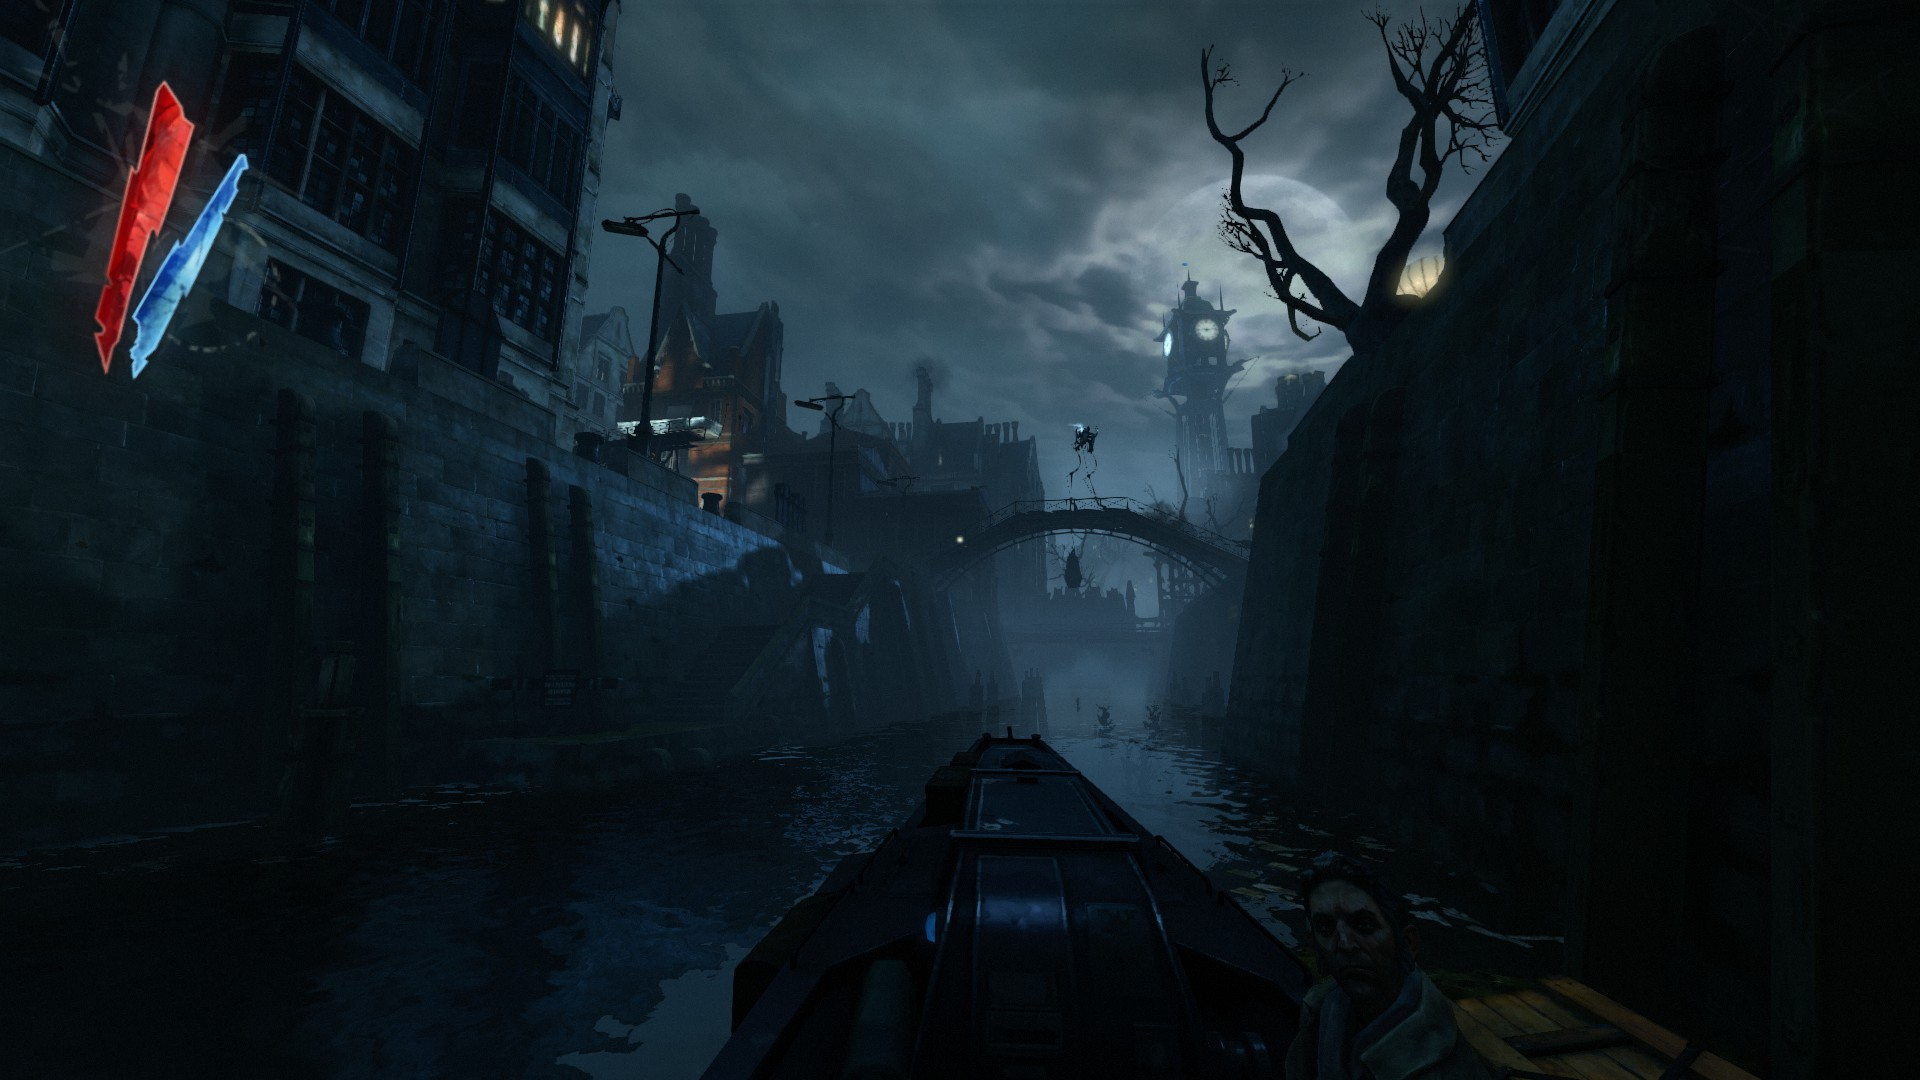 A dark and spooky city with a clock tower in the distance.